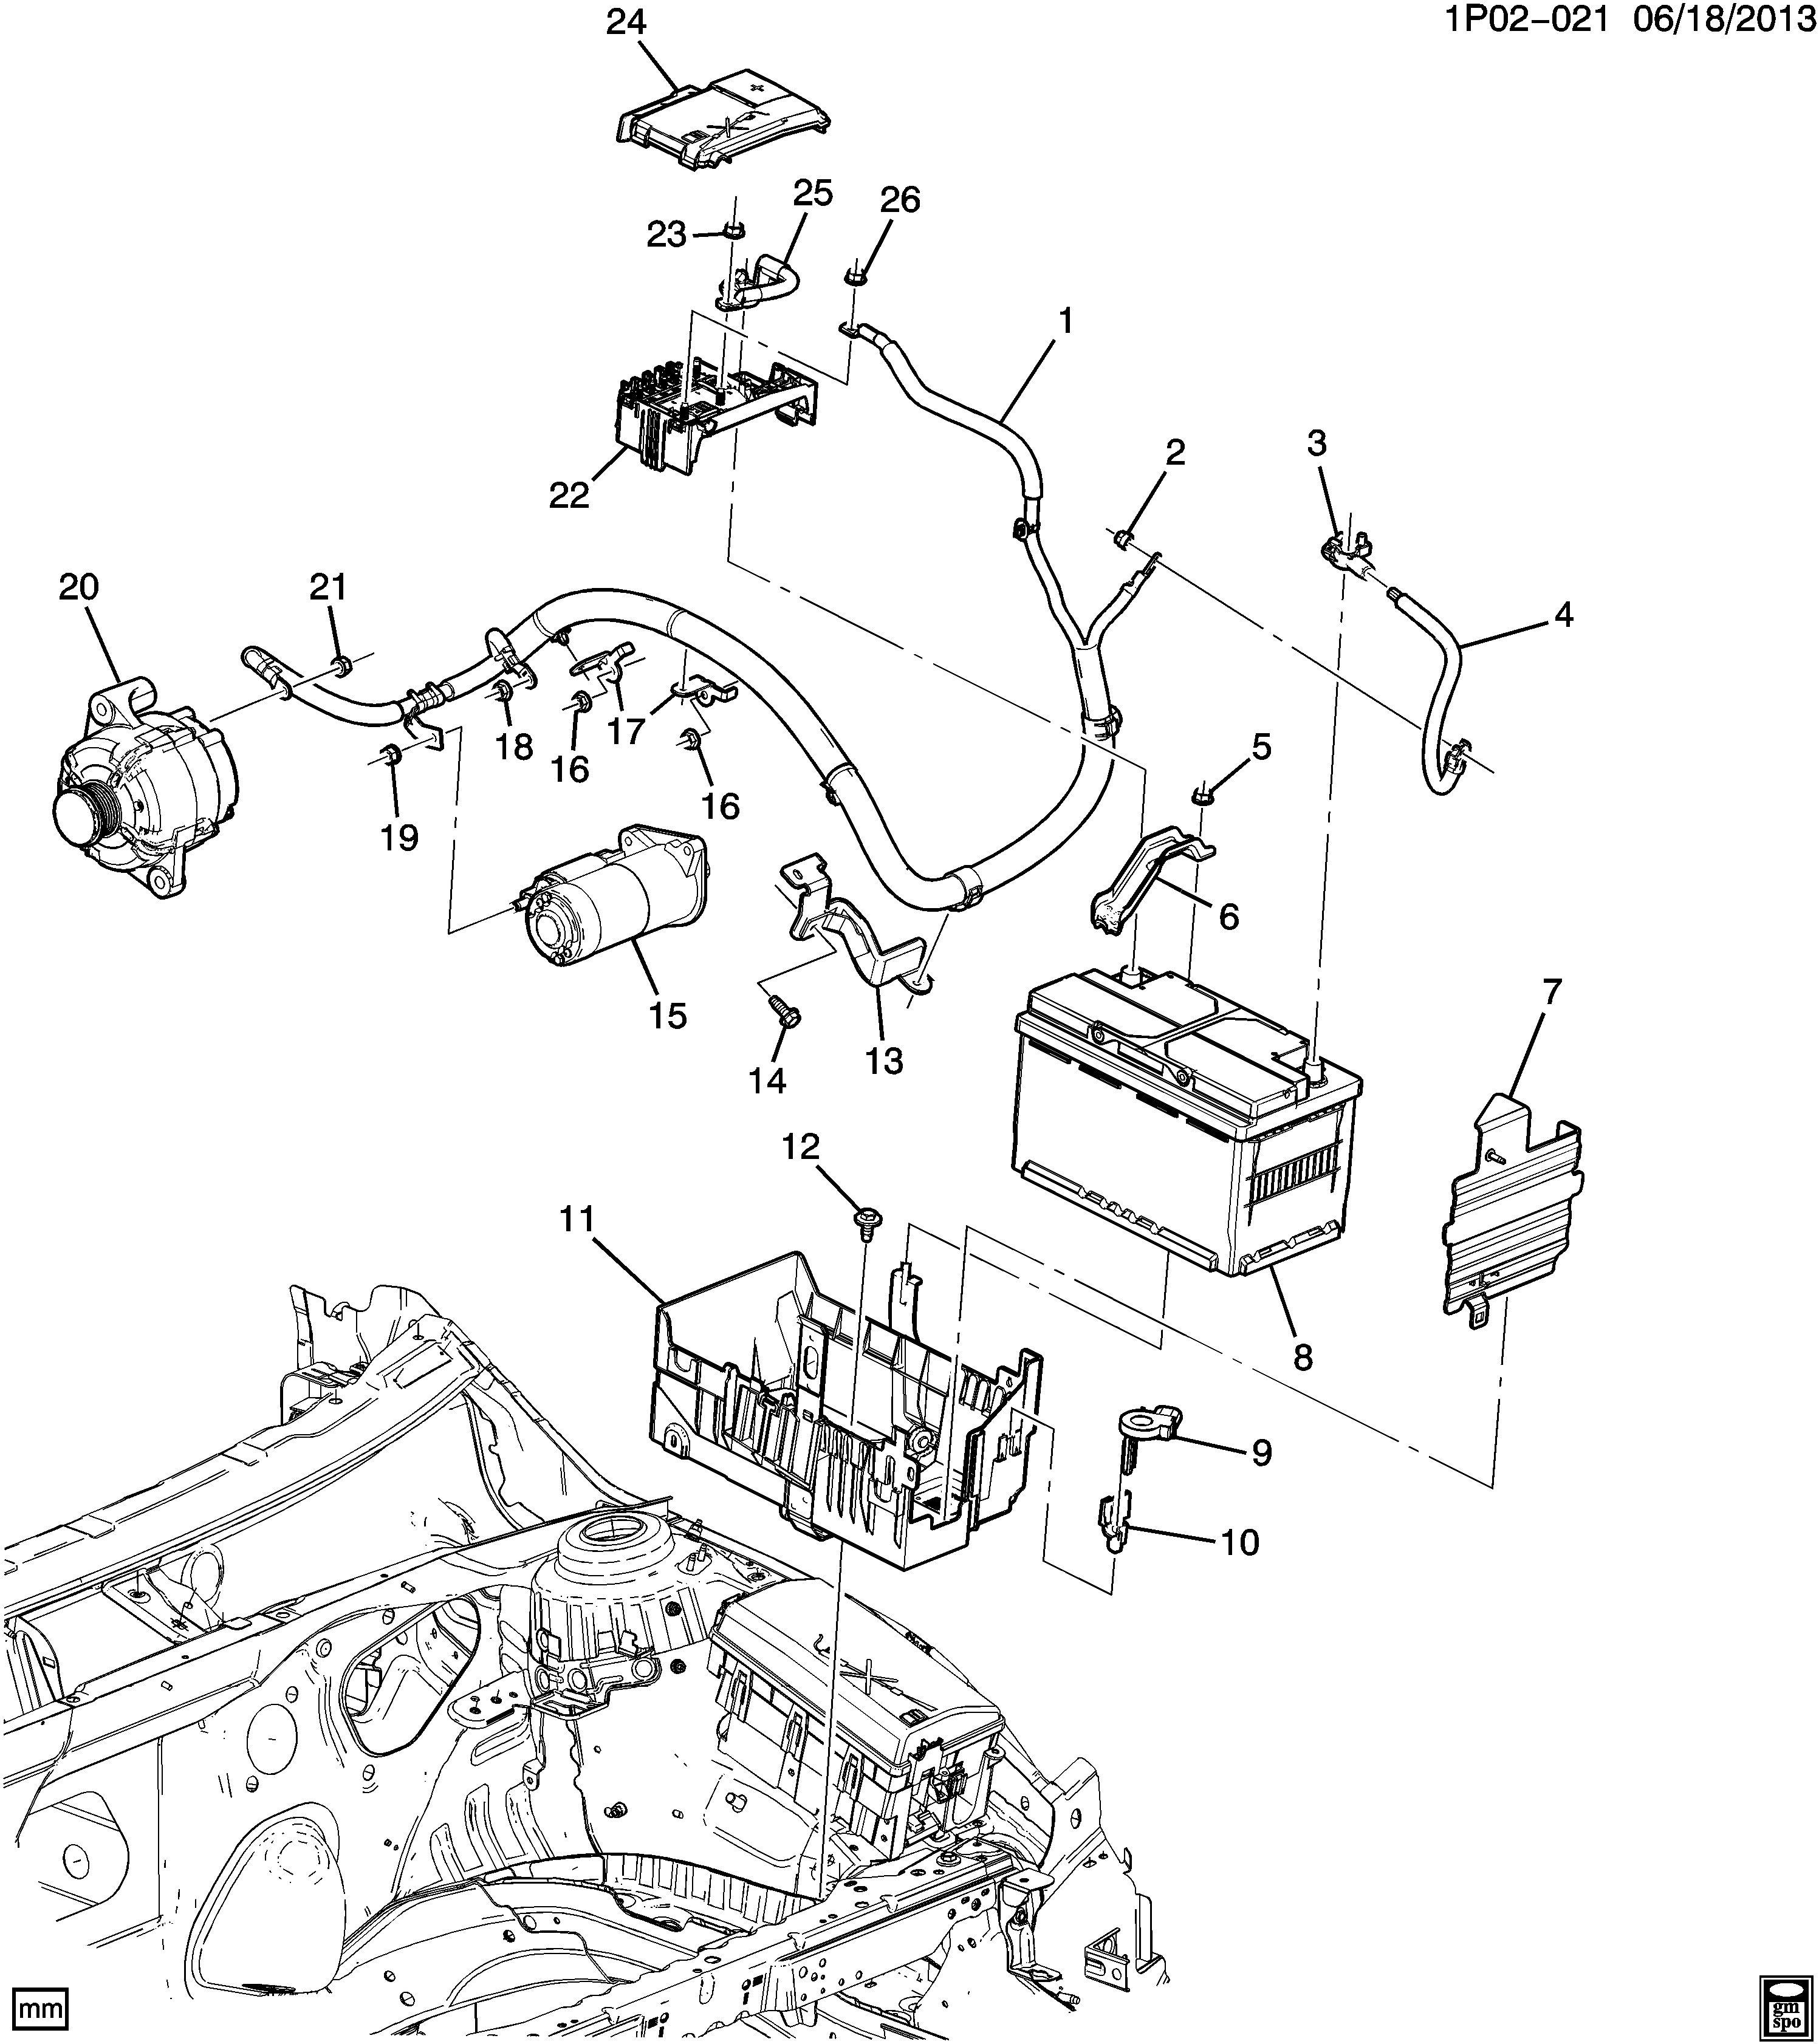 [DIAGRAM] 1990 Chevy 1500 Battery Junction Block Wiring